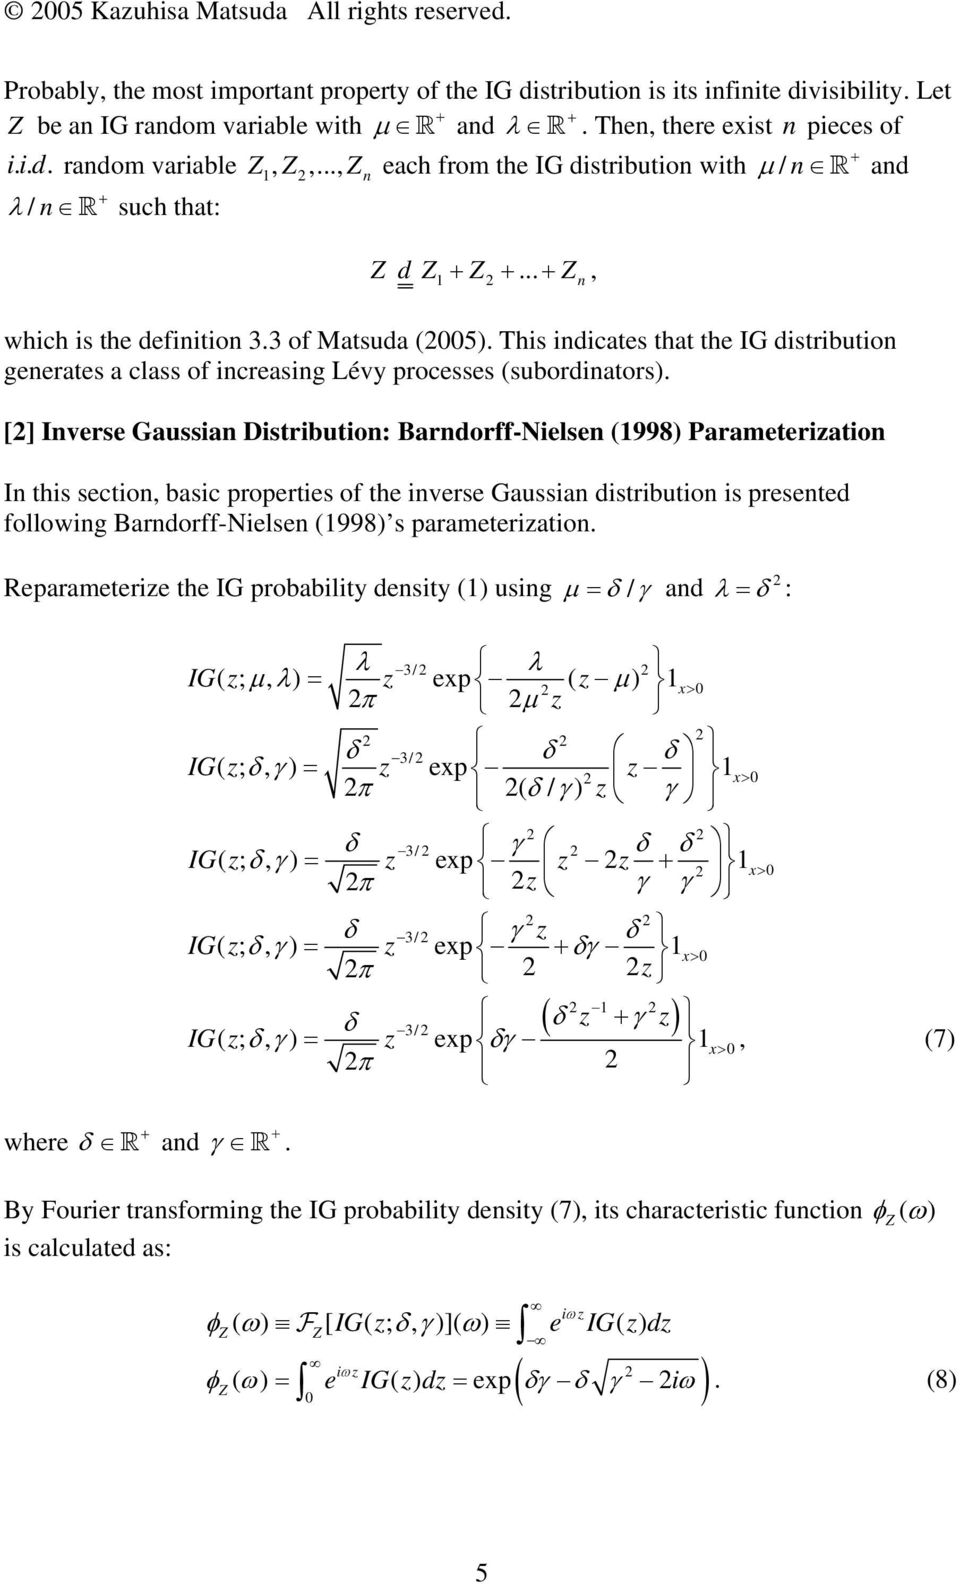 This idicates that the IG distributio geerates a class of icreasig Lévy processes (subordiators).